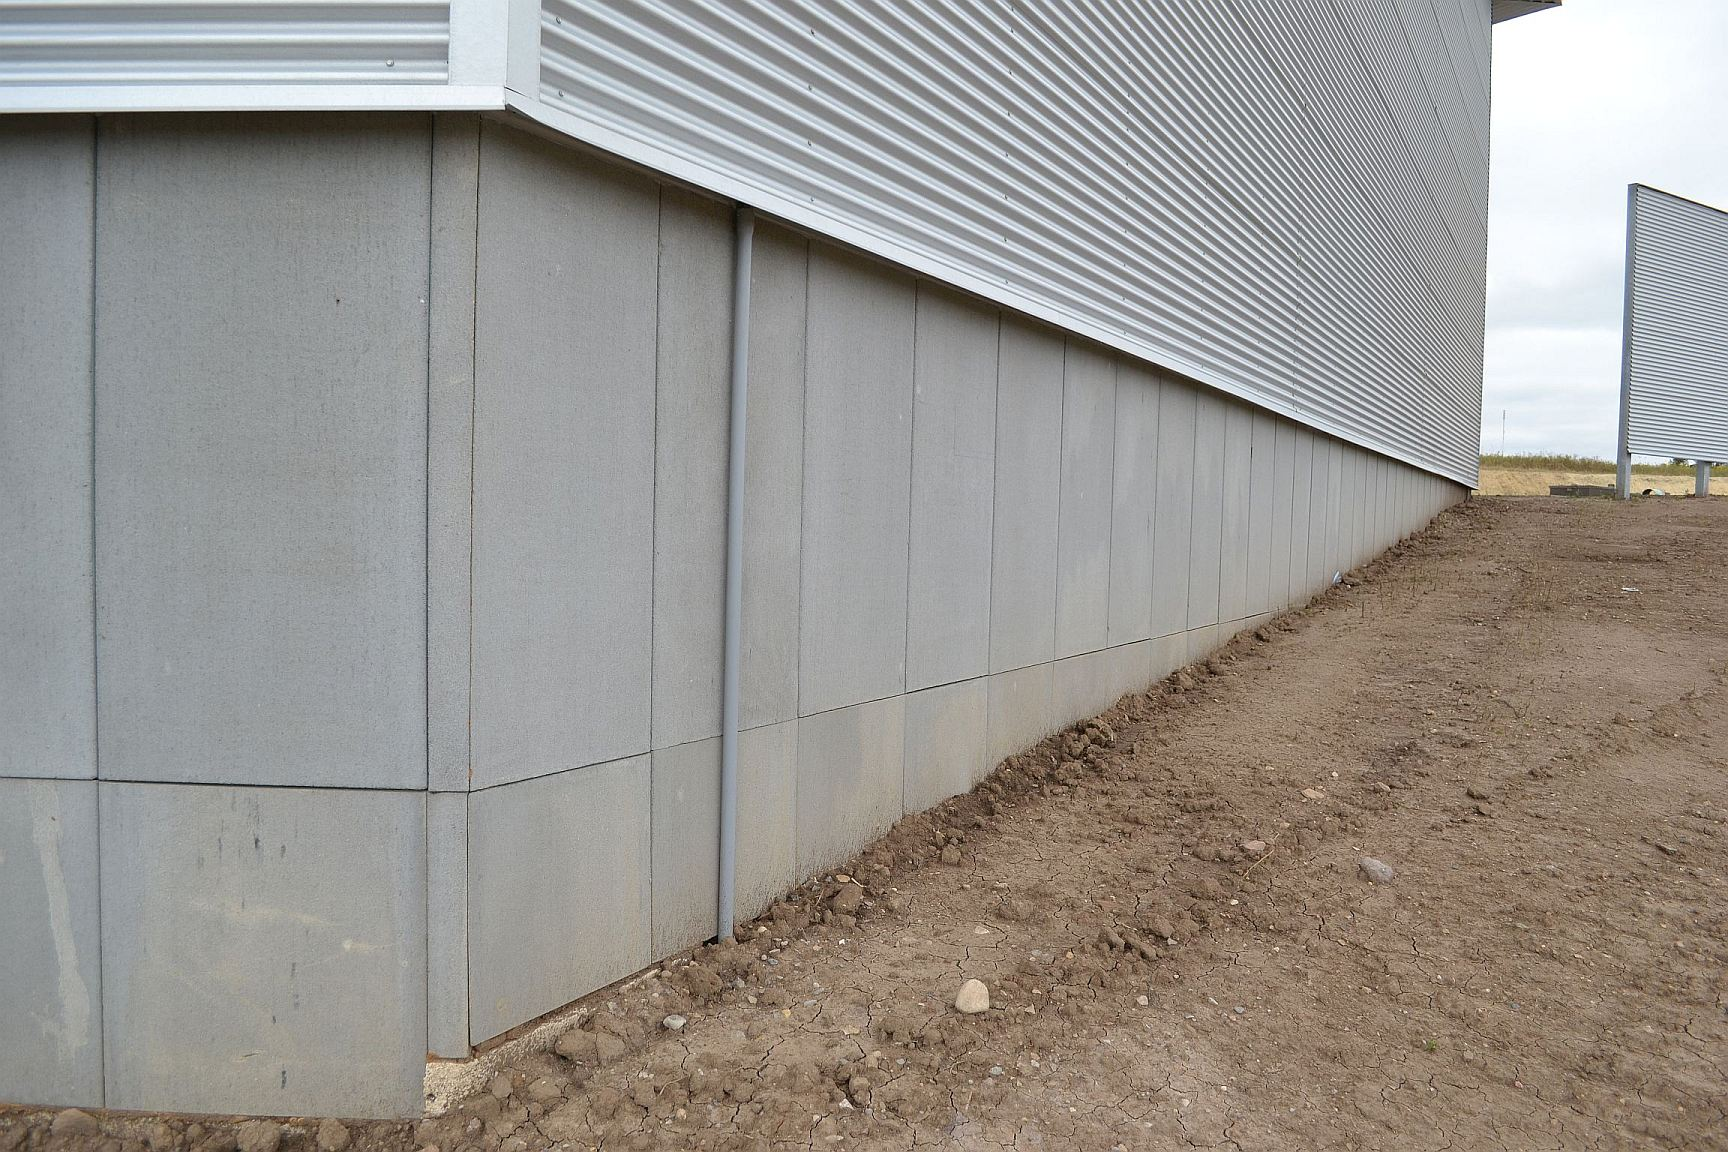 WallGUARD® Concrete-faced Insulated Perimeter Wall Panels